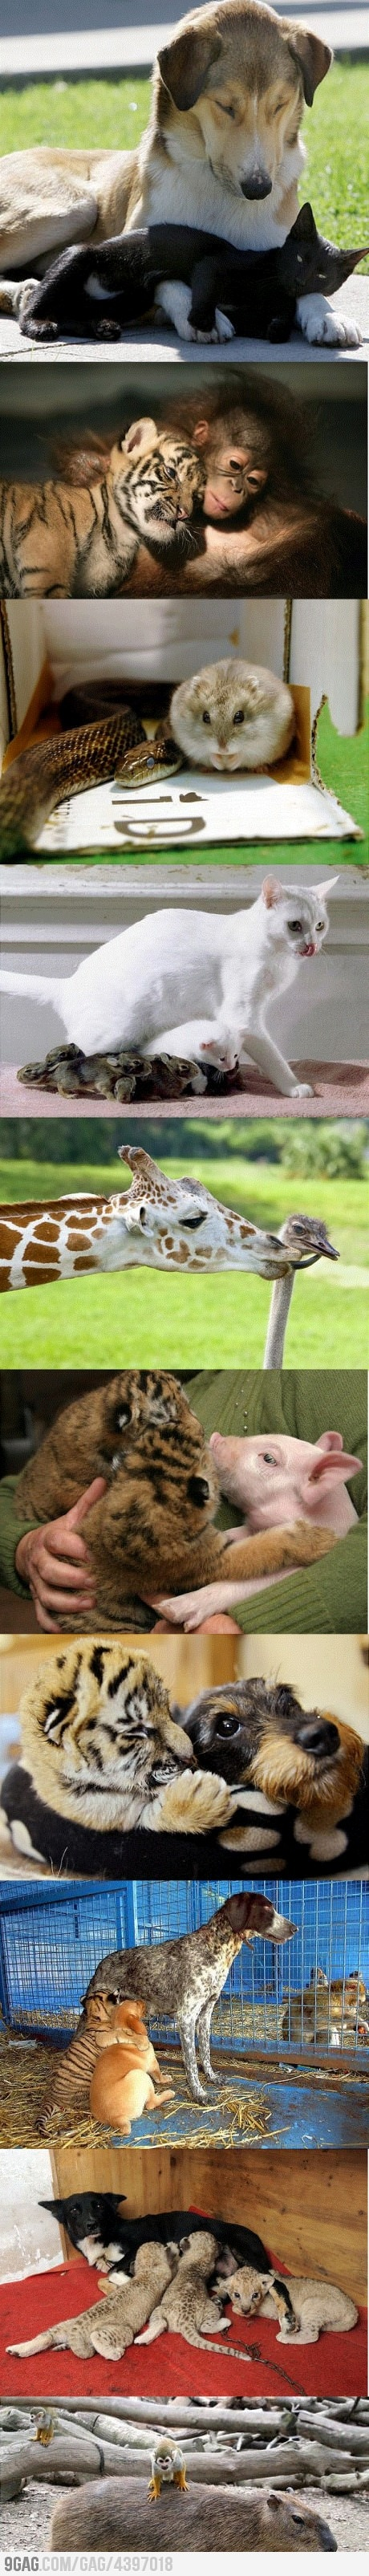 Some Unexpected Friendships